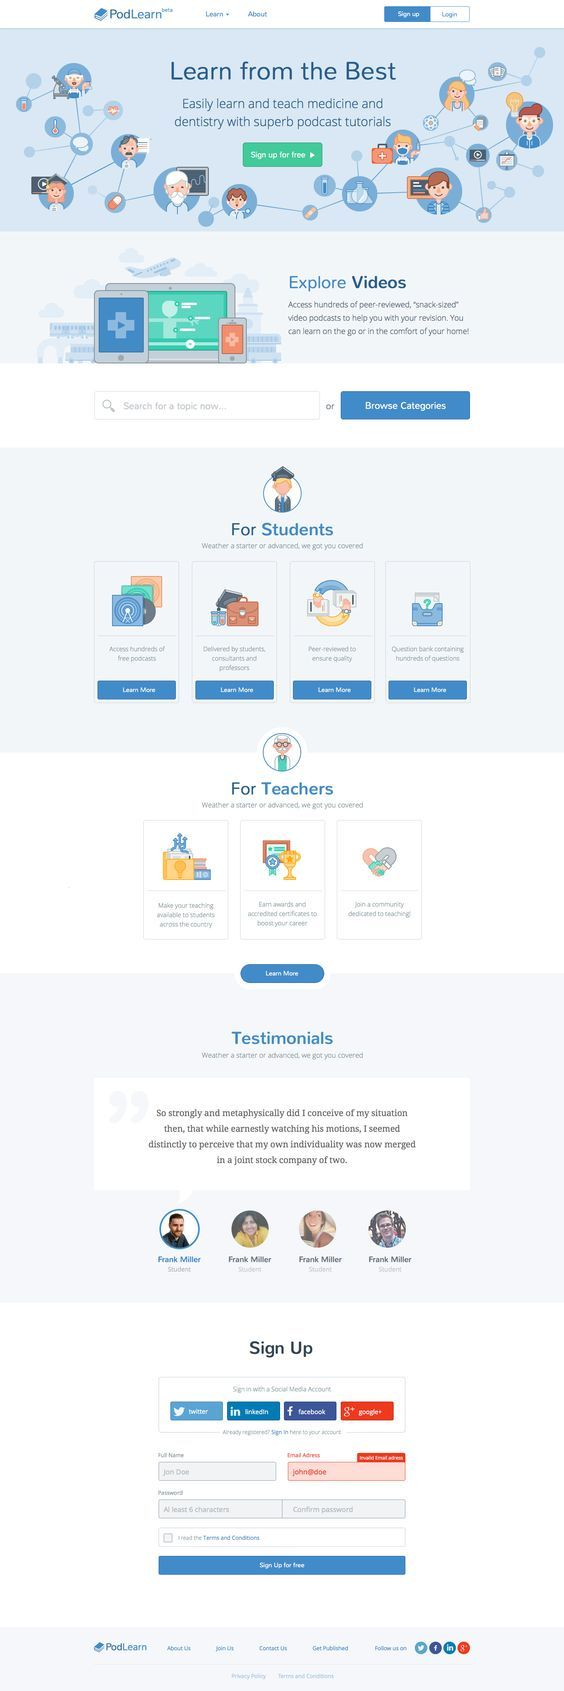 """Podlearn-landing-page-realpixels - Podlearn is an e-learning platform designed for medical students by medical students. Our aim is to create an easy-to-use learning resource filled with """"snack-sized"""" content to supplement traditional methods of learning. The team comprises of junior doctors, consultants, academics and technologists across multiple academic institutions. Interesting in joining the team? There are many ways to get involved."""